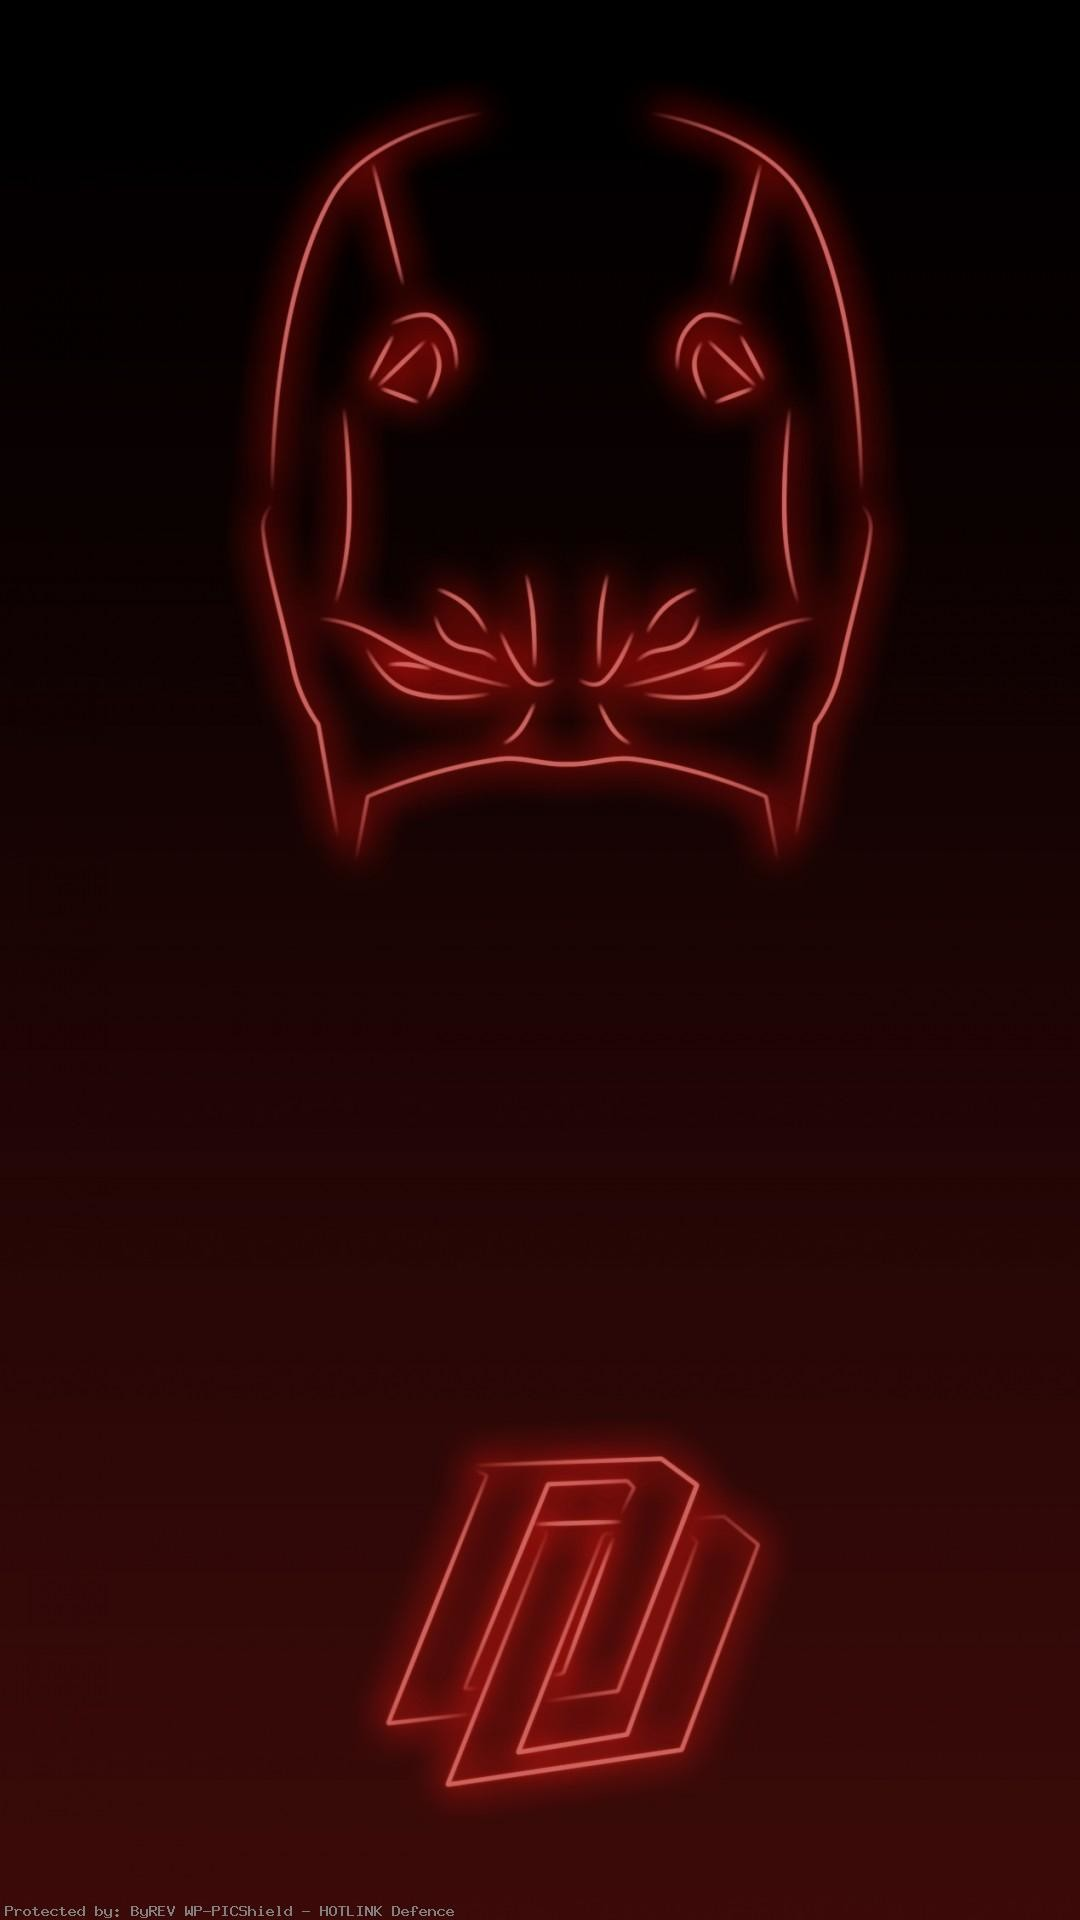 Daredevil-Tap-to-see-more-Superheroes-Glow-With-